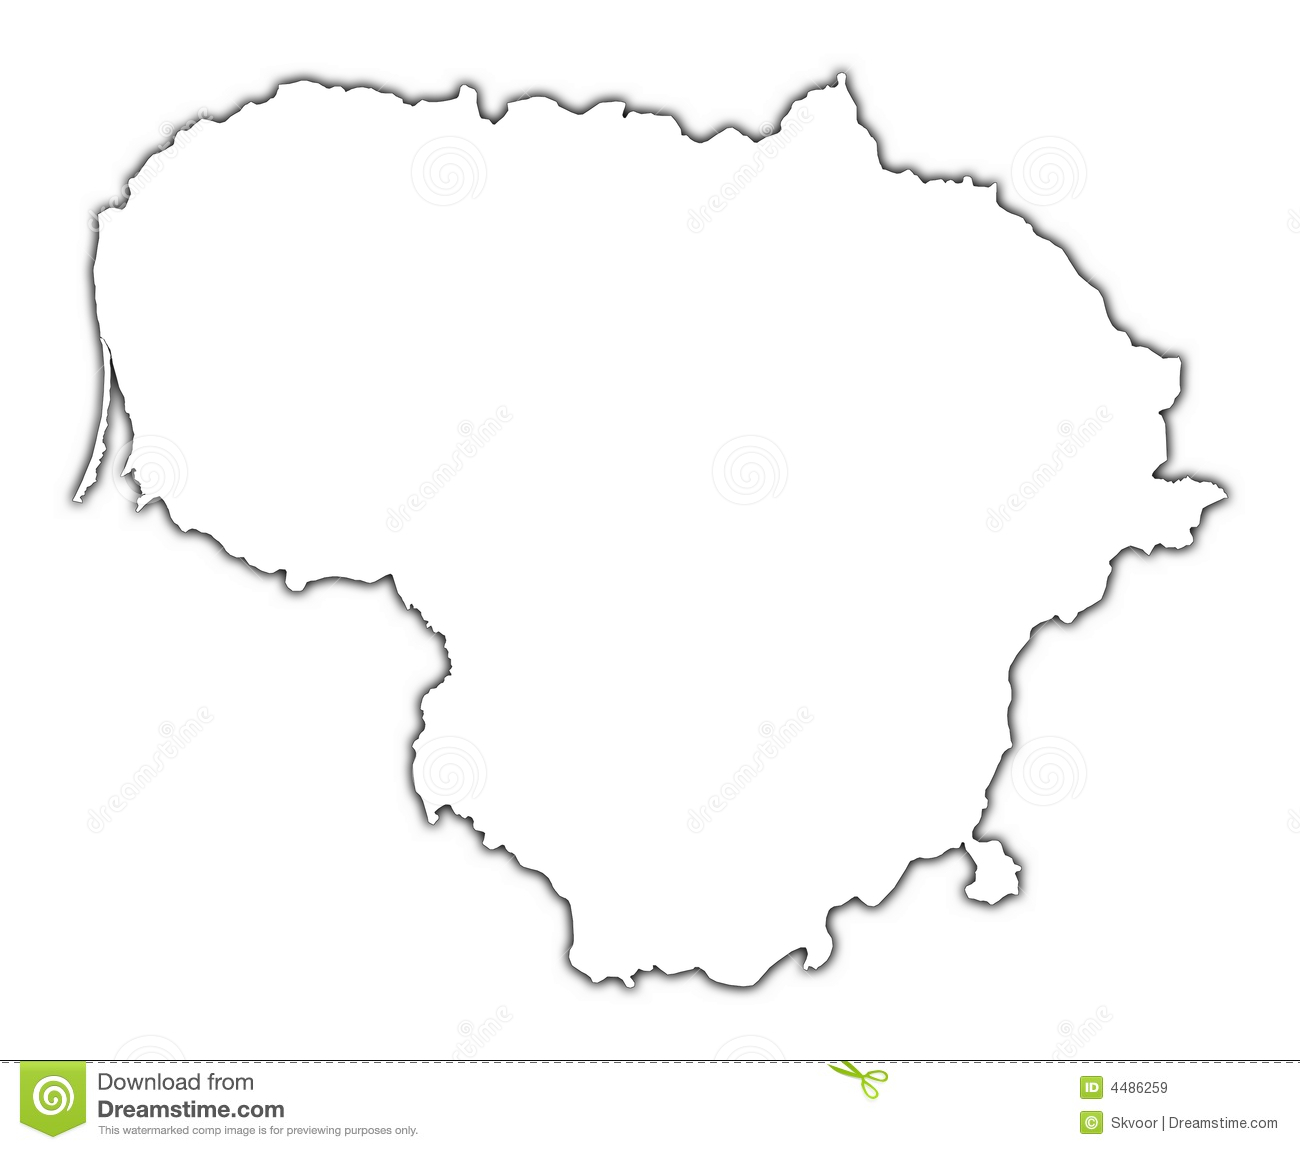 Stock Illustration Set Polynesian Tattoo Styled Masks Vector Illustration Image57182438 moreover Blank Map additionally Royalty Free Stock Images Lithuania Outline Map Image4486259 also The Case For Private Management Of Roads And A Canadian Ex le likewise Carte. on america map north